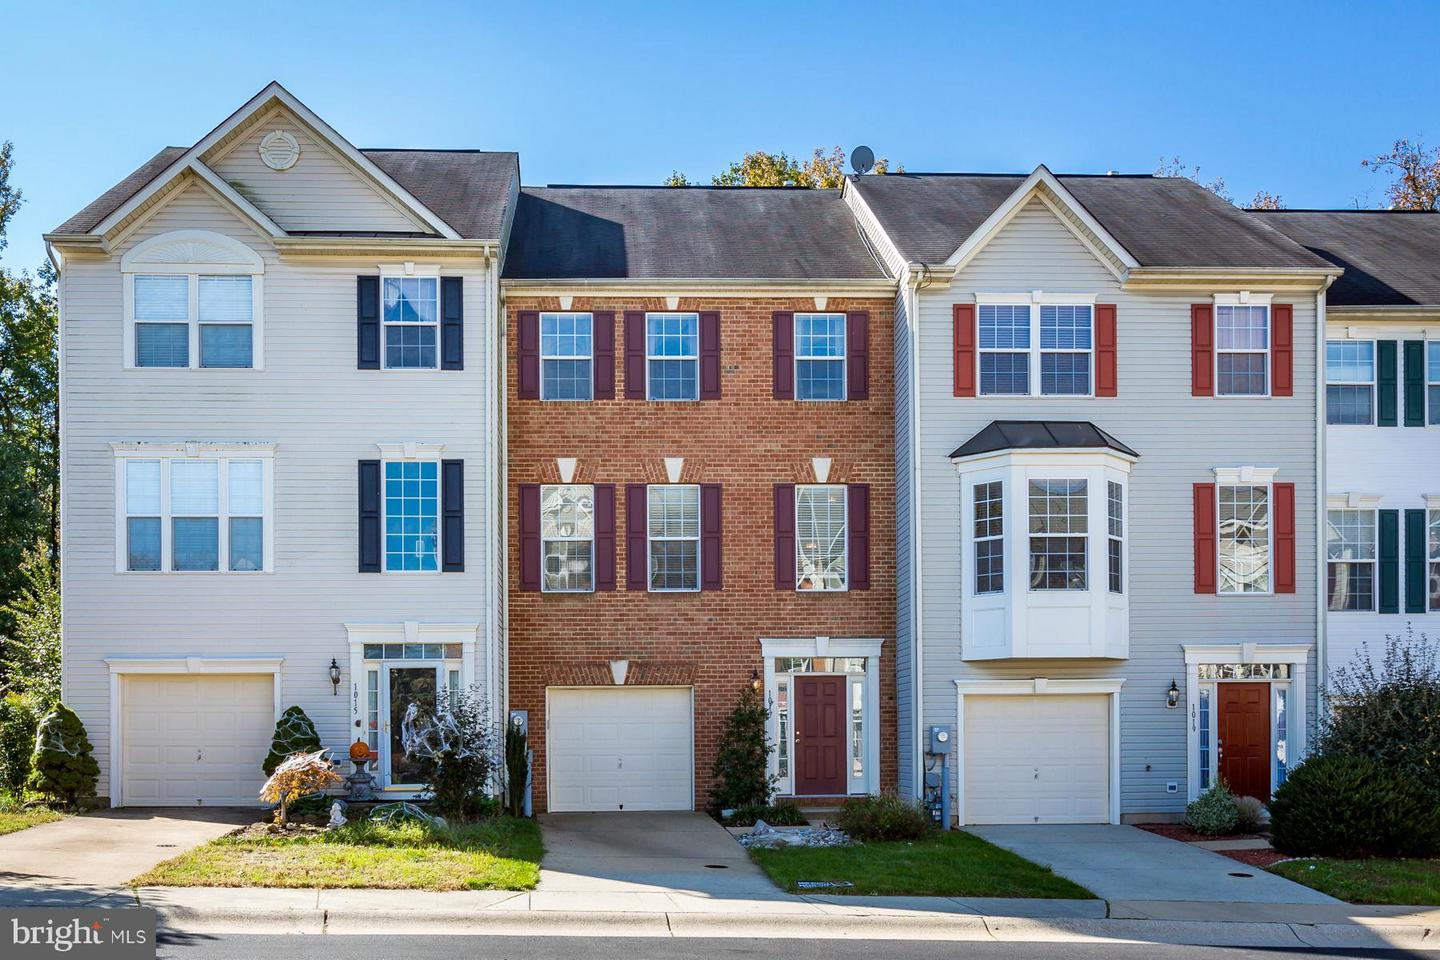 1017 MEANDERING WAY, ODENTON, Maryland